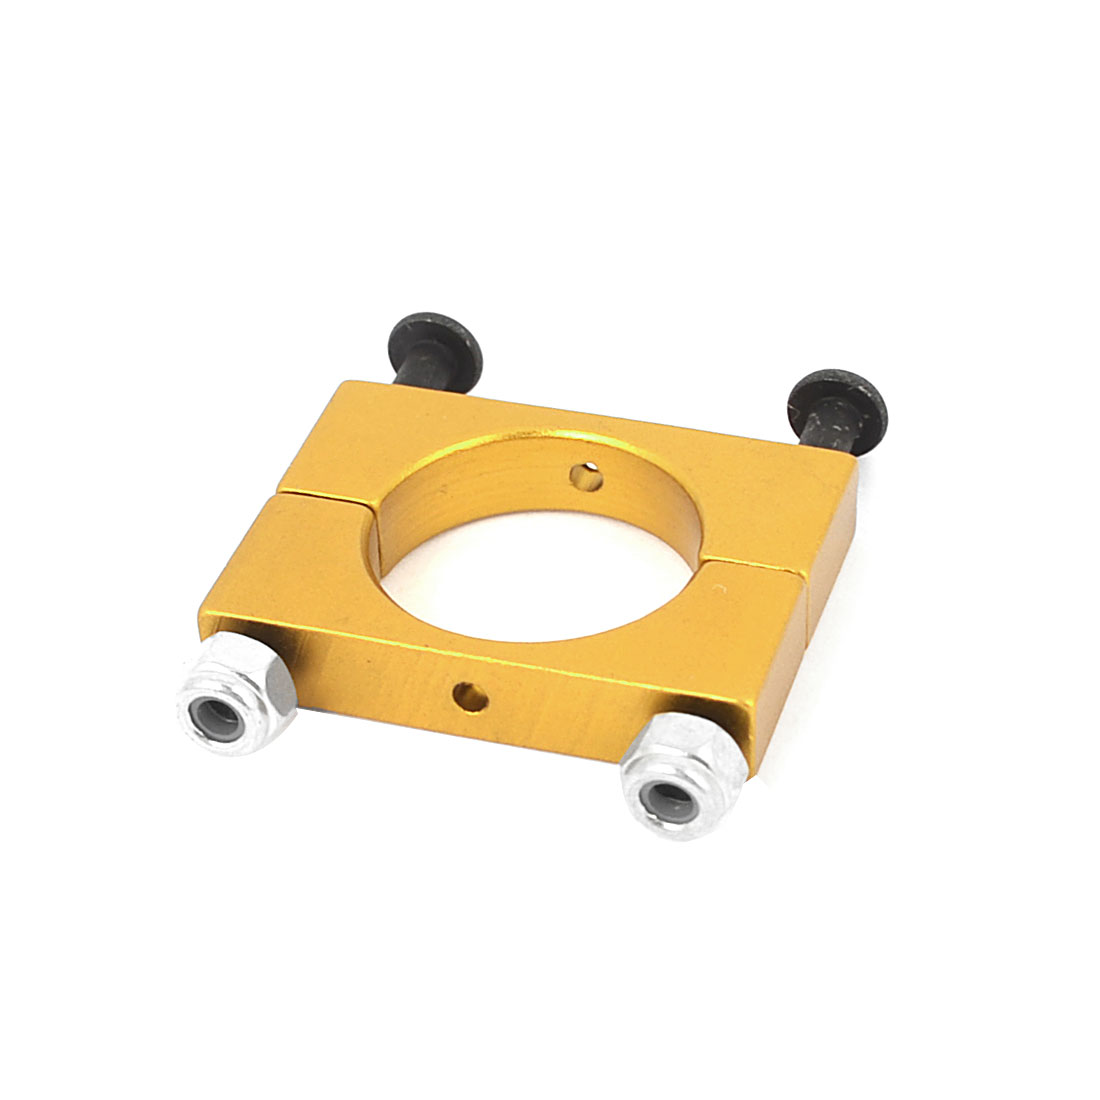 CNC Alloy 15mm Yellow Tube Boom Mount Motor Clamp for DIY Quadcopter